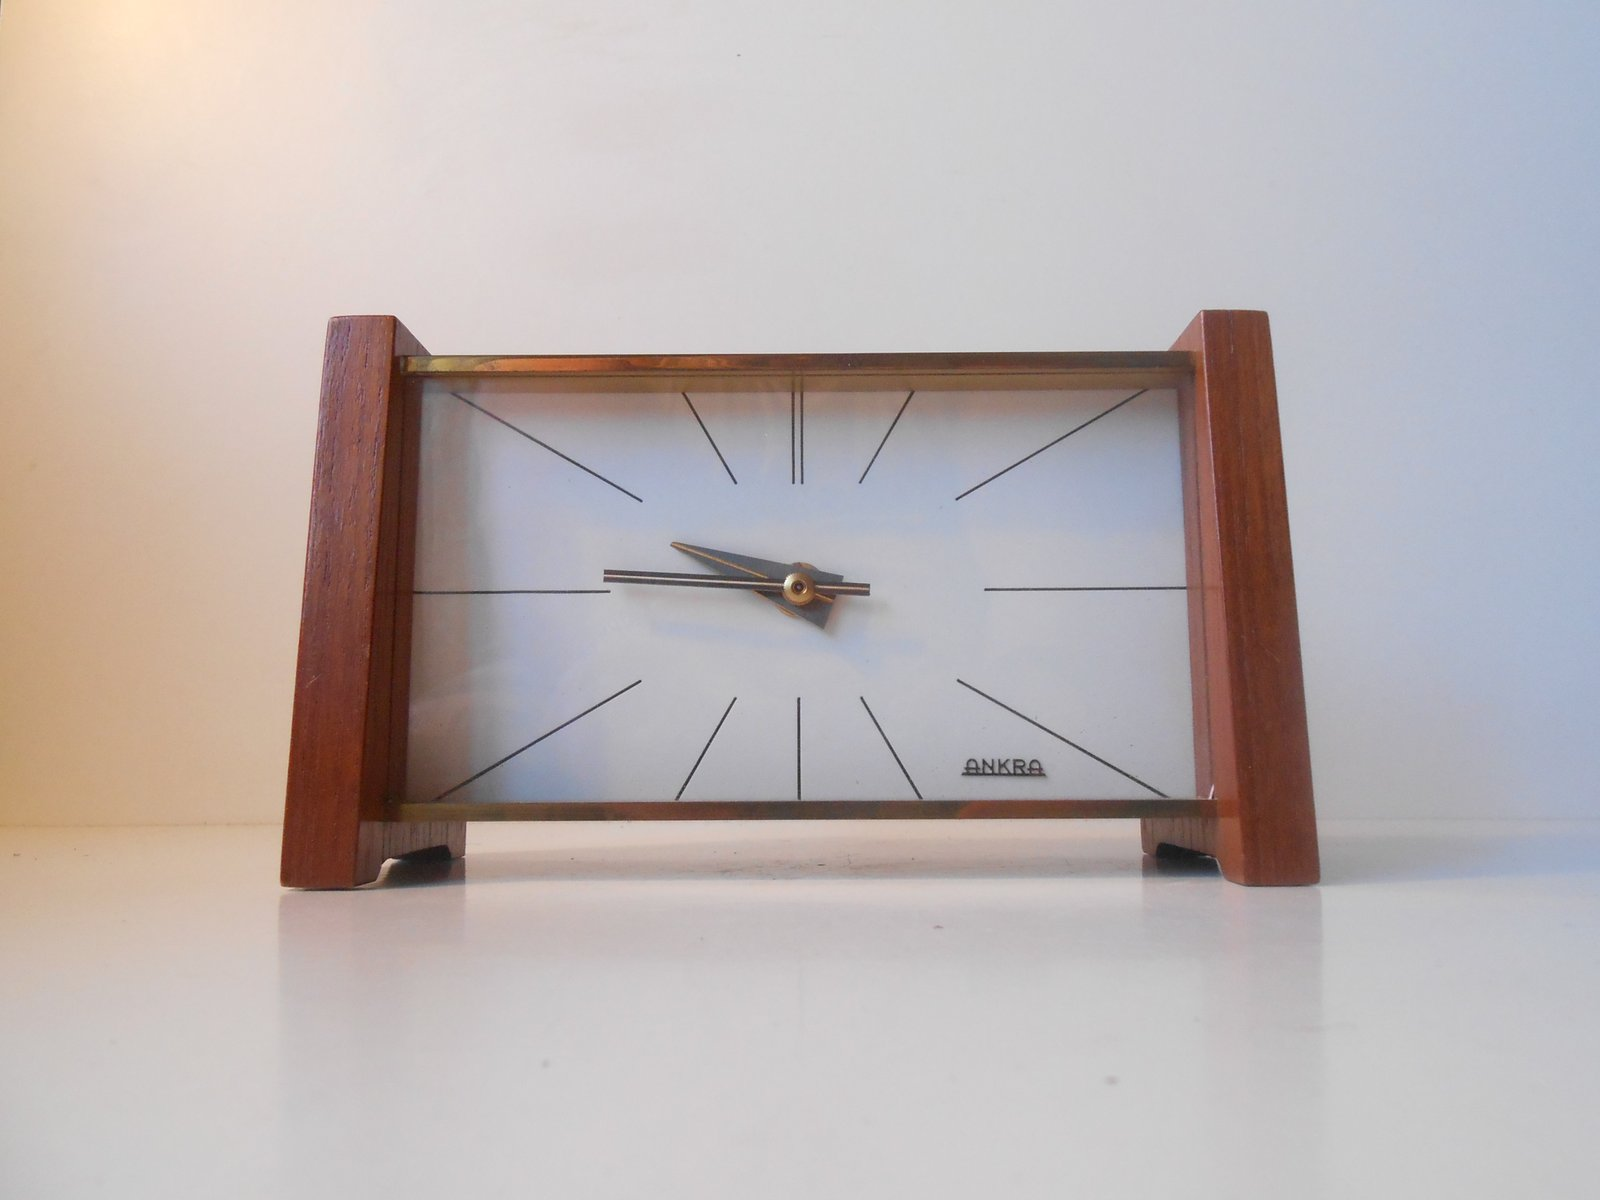 Charming Mid Century Modern Table Clock From Ankra